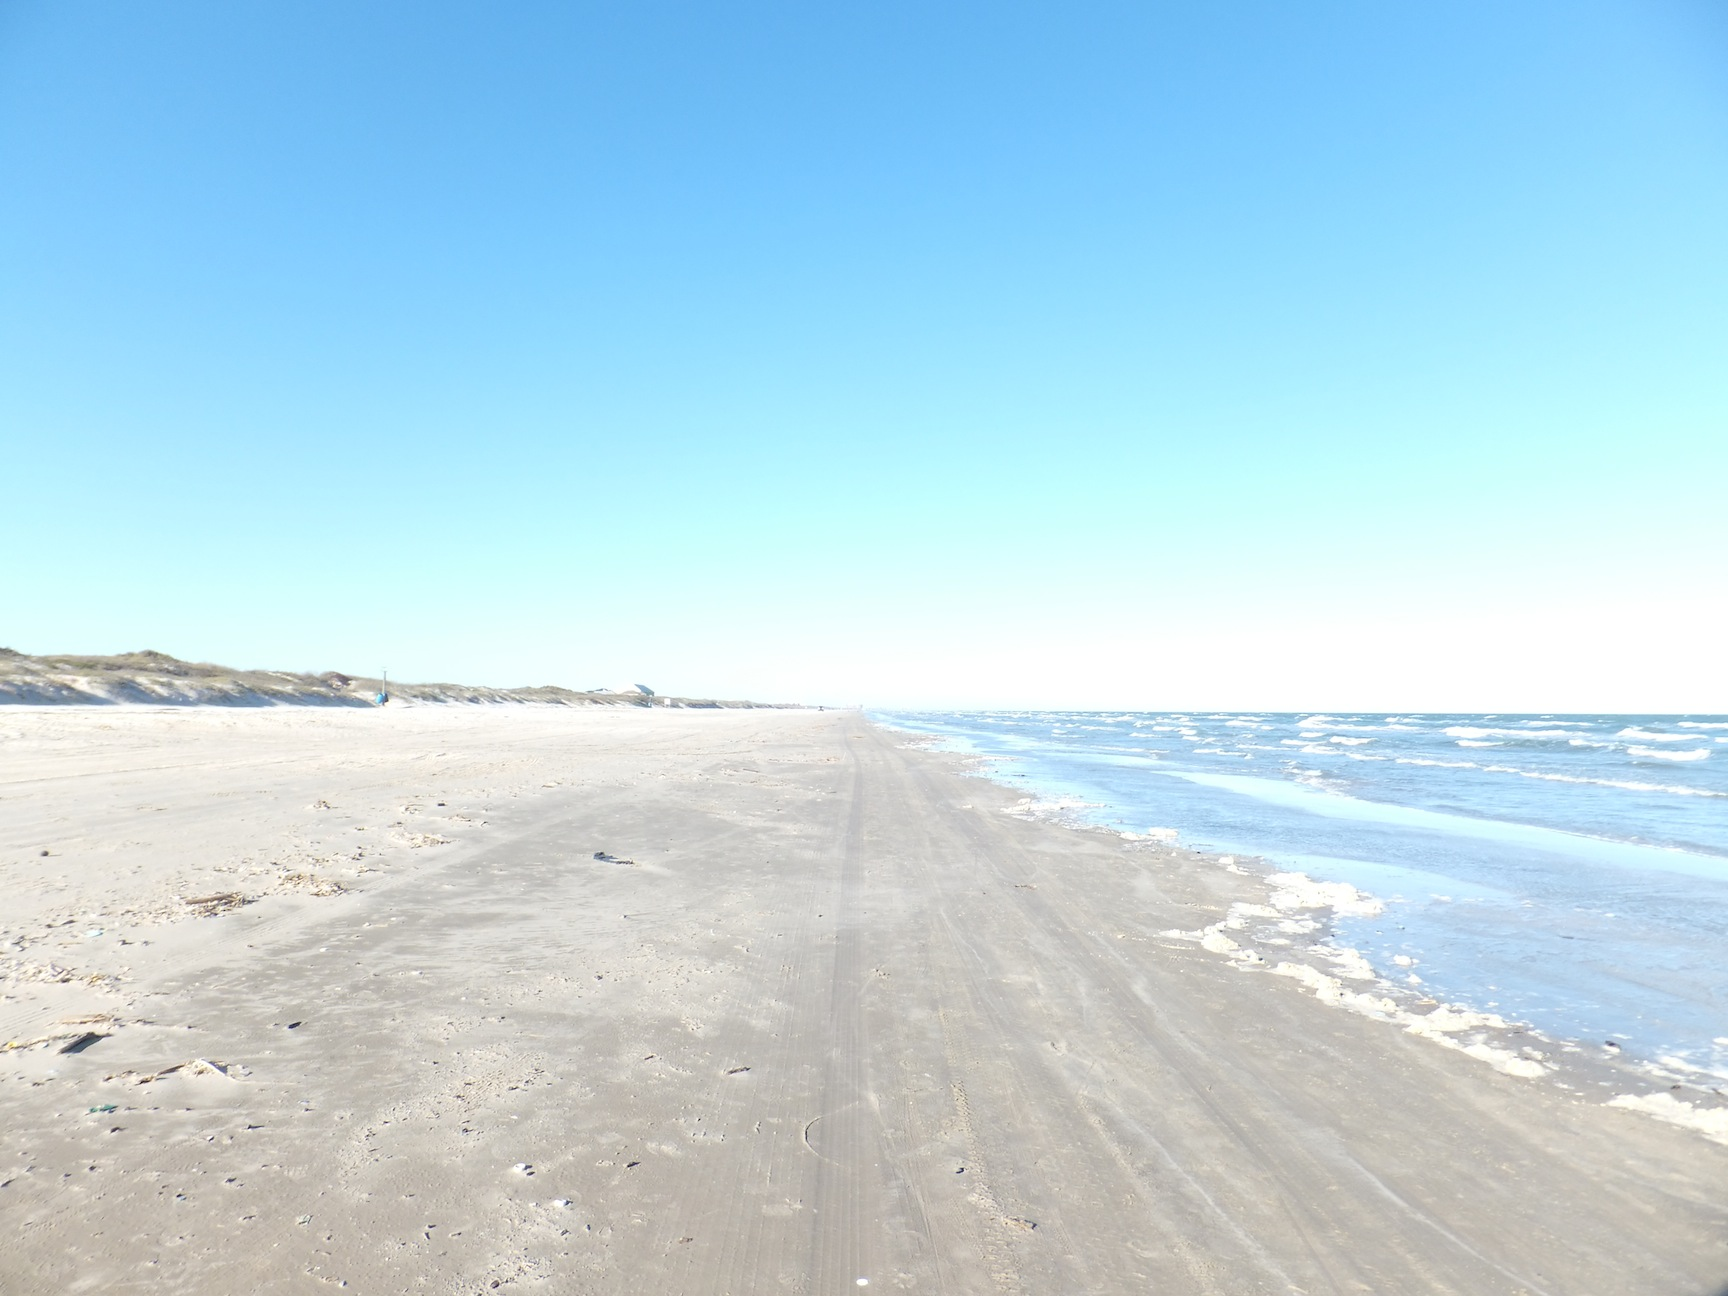 Port A Texas Of Port Aransas Tx On Mustang Island Full Time Rving Made Easy